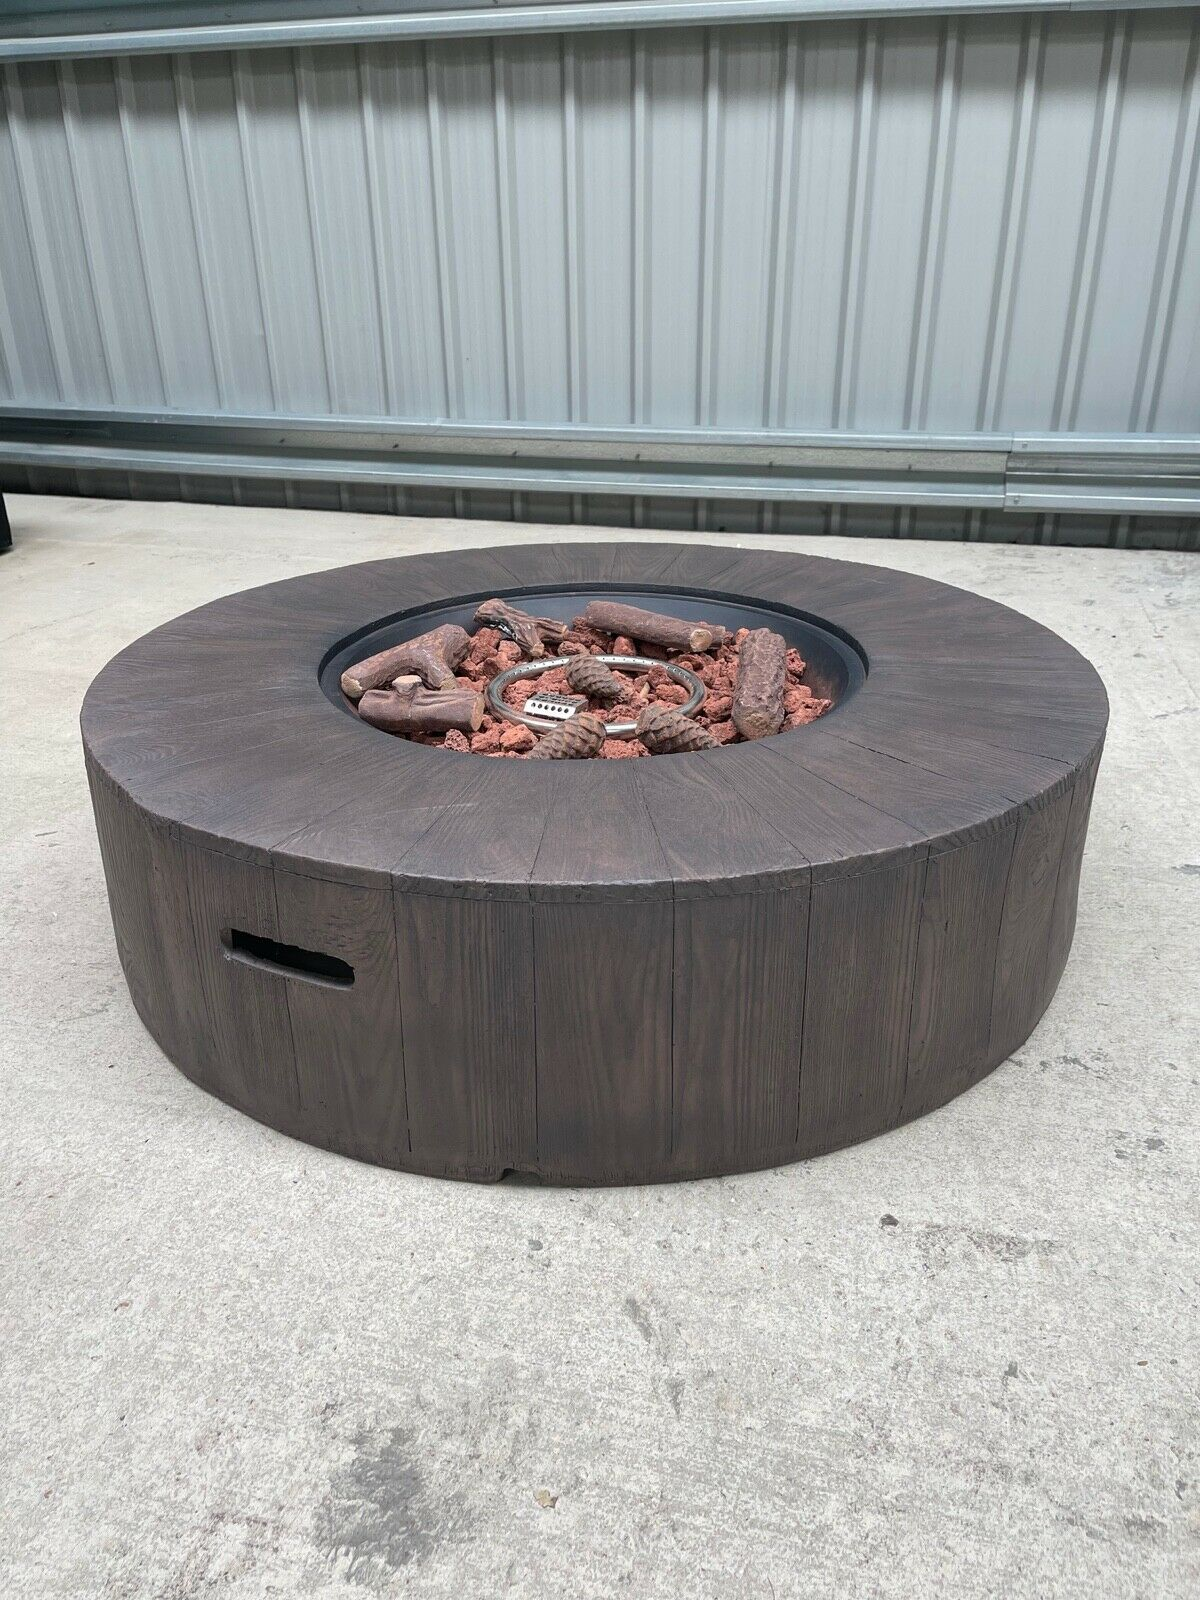 Gambara Round Gas Fire Pit Table With Lava Rocks & Ceramic Logs